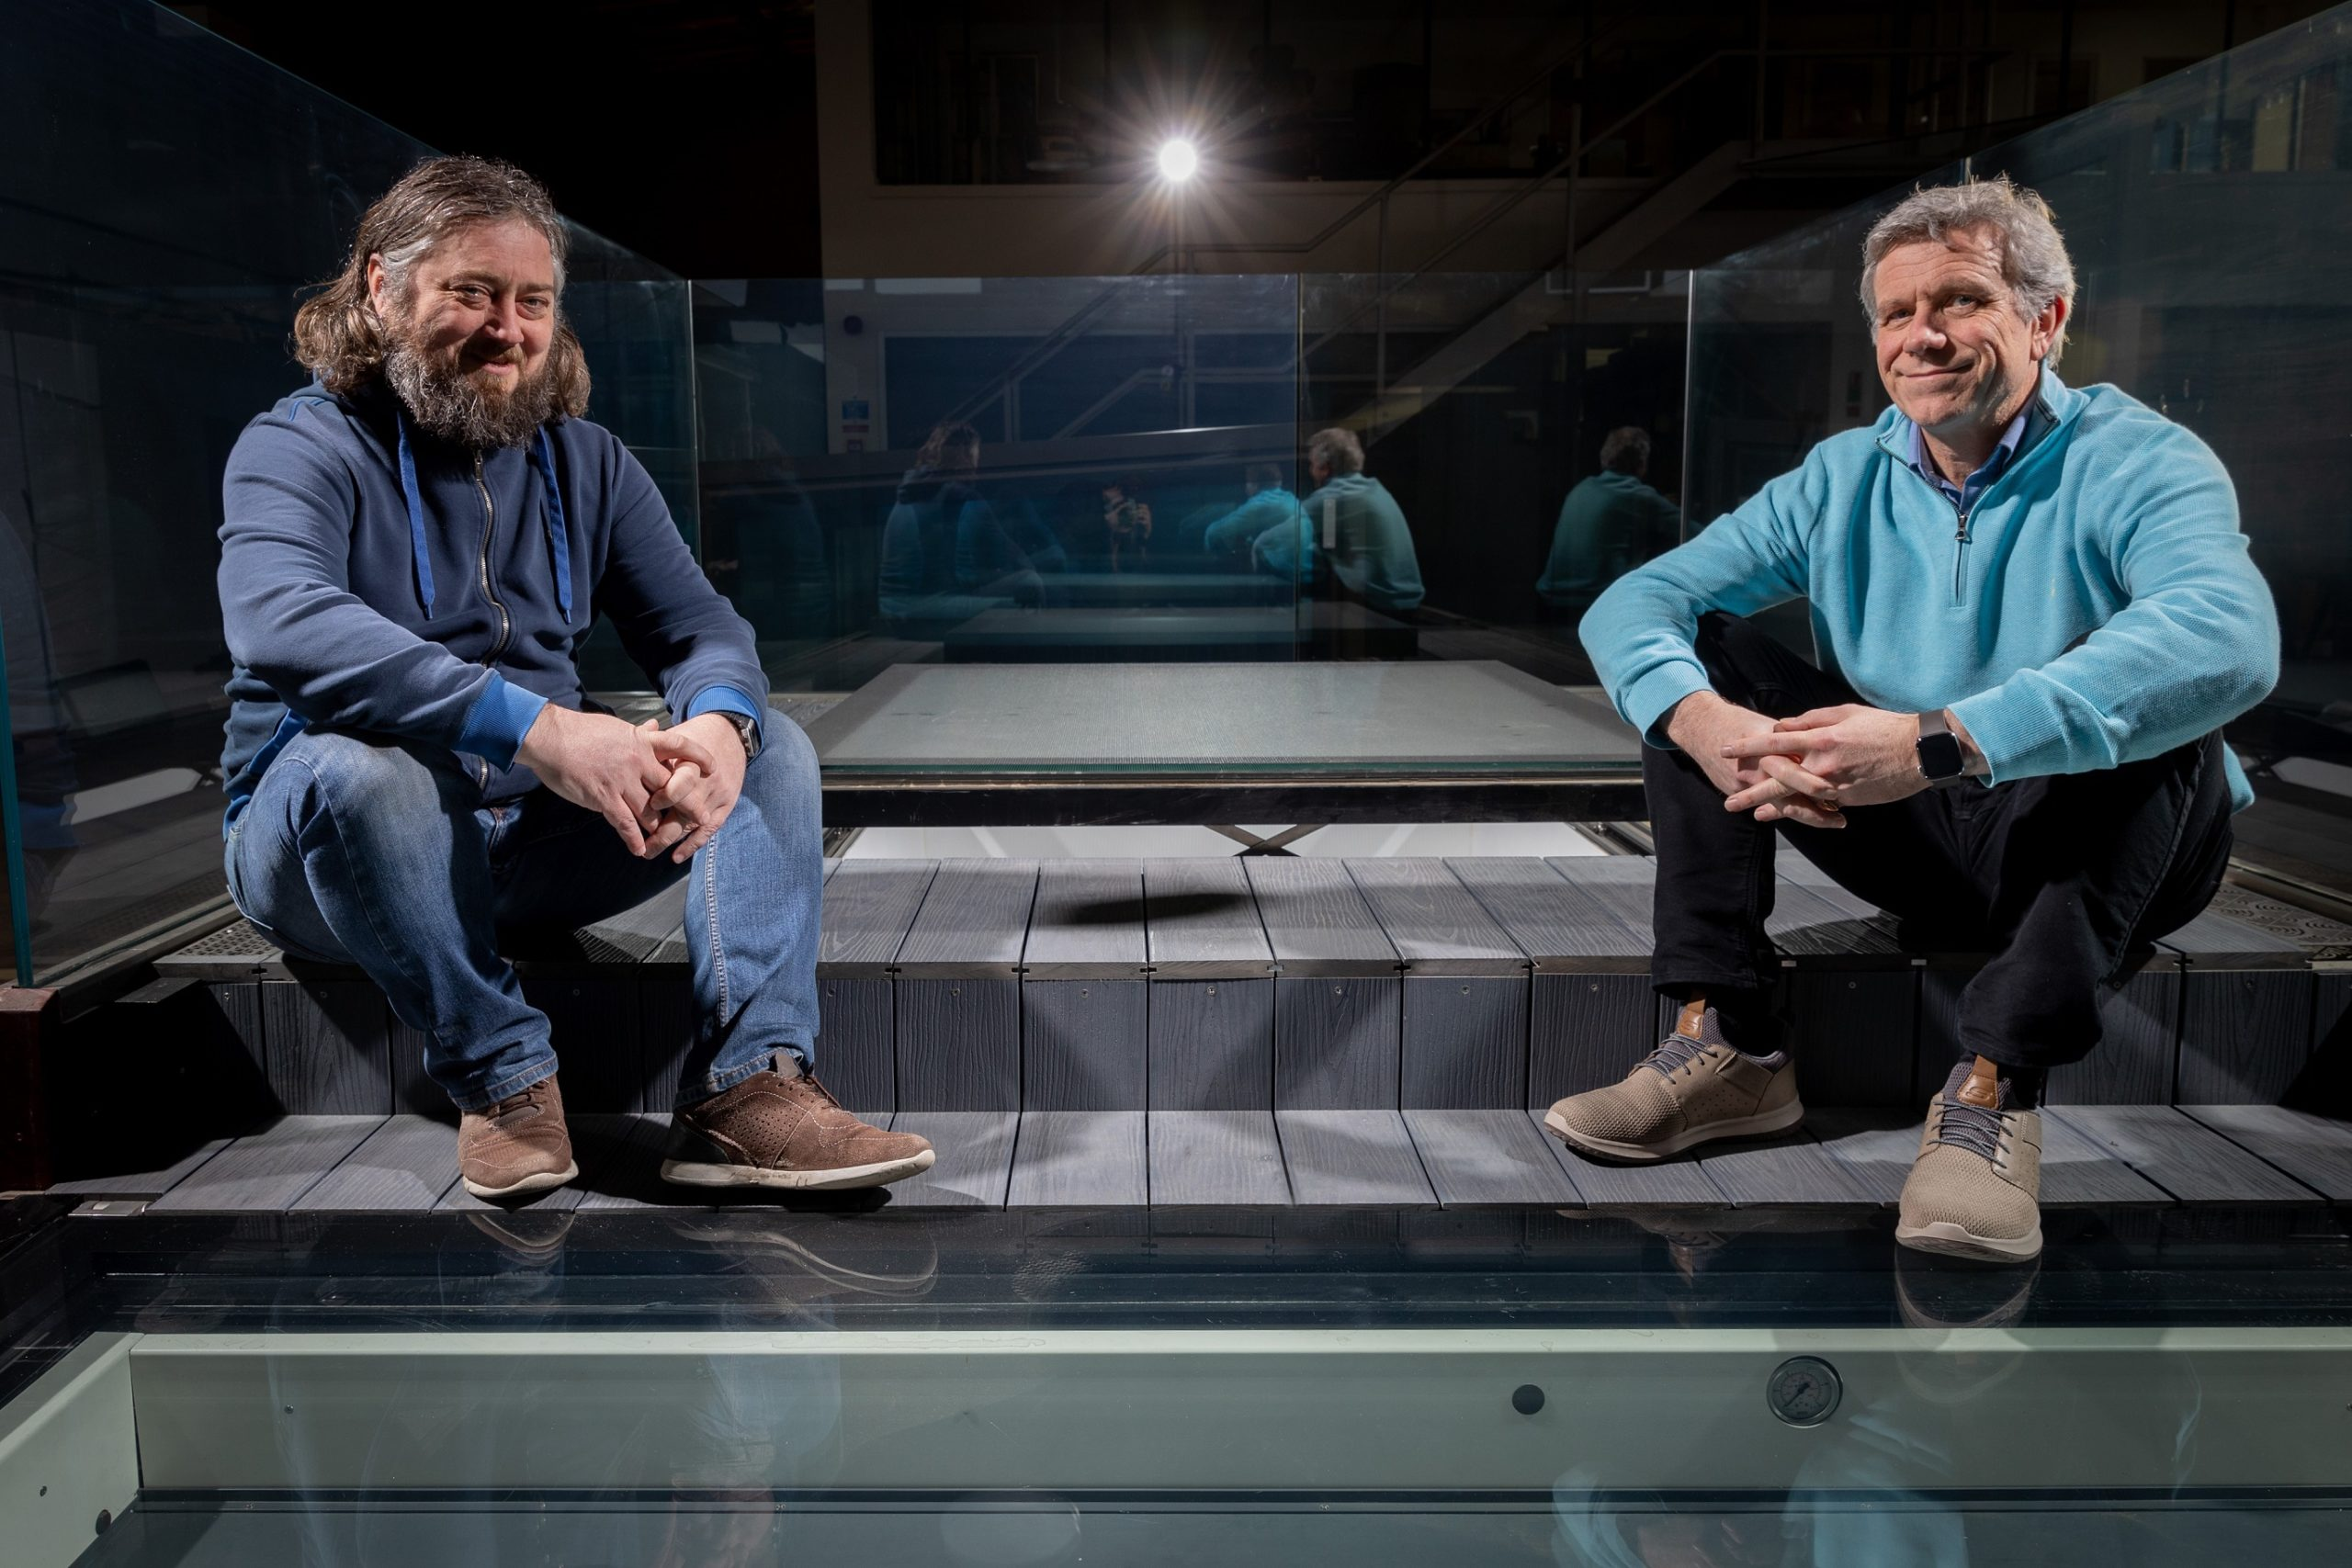 Final test completes 300k R&D investment by structural glass pioneers